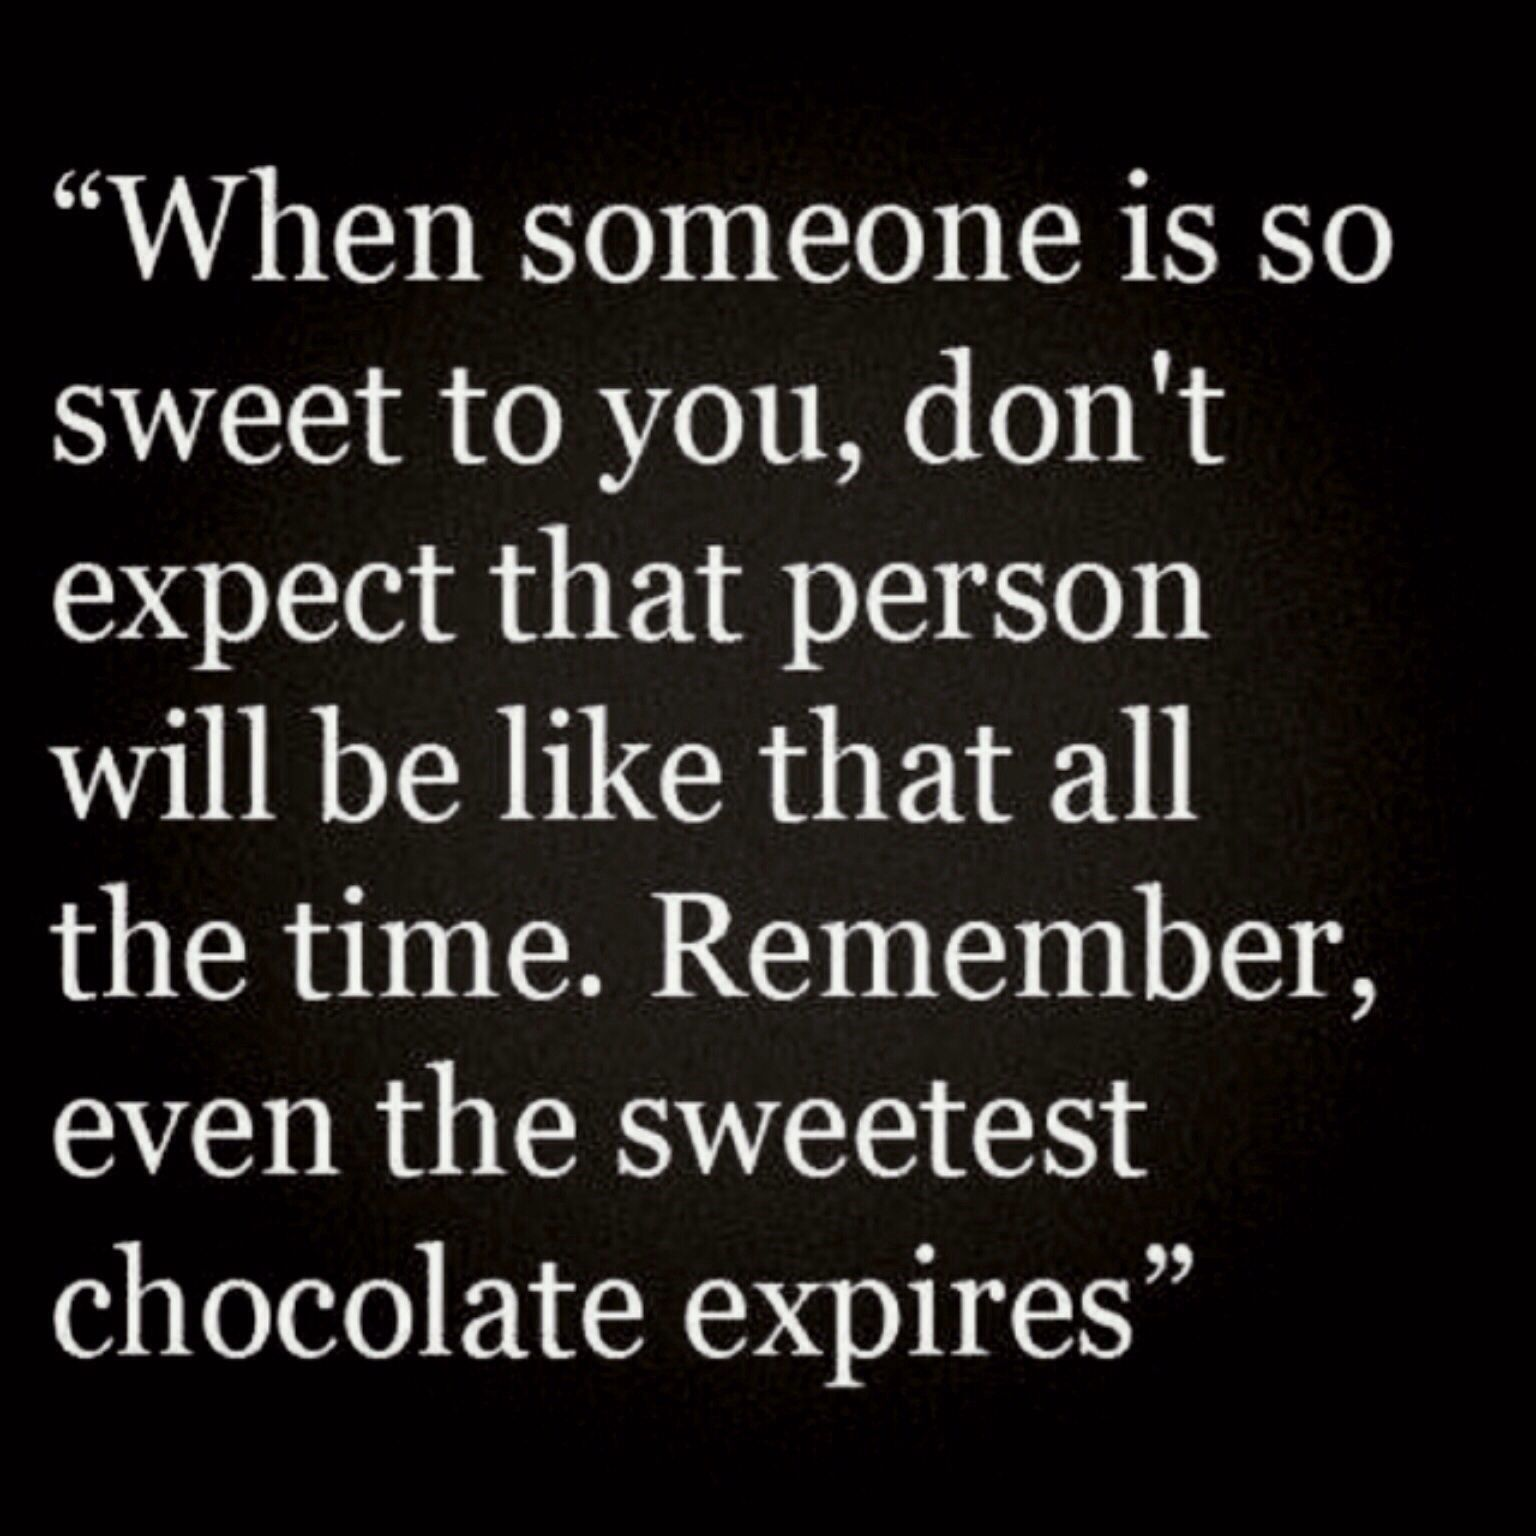 someone #sweet #expect #sweetest #person #chocolate #expired ...